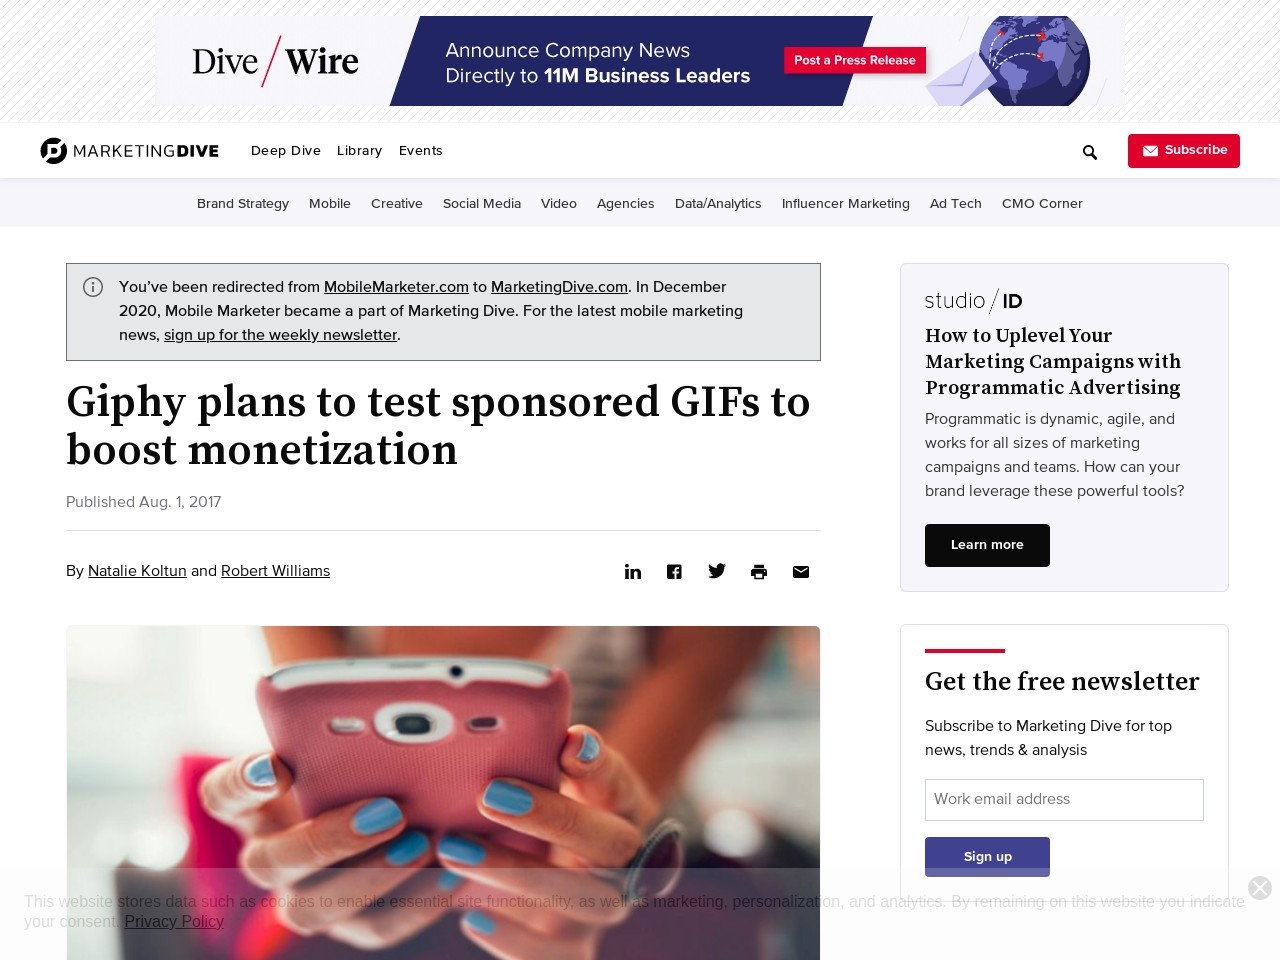 Giphy plans to test sponsored GIFs to boost monetization